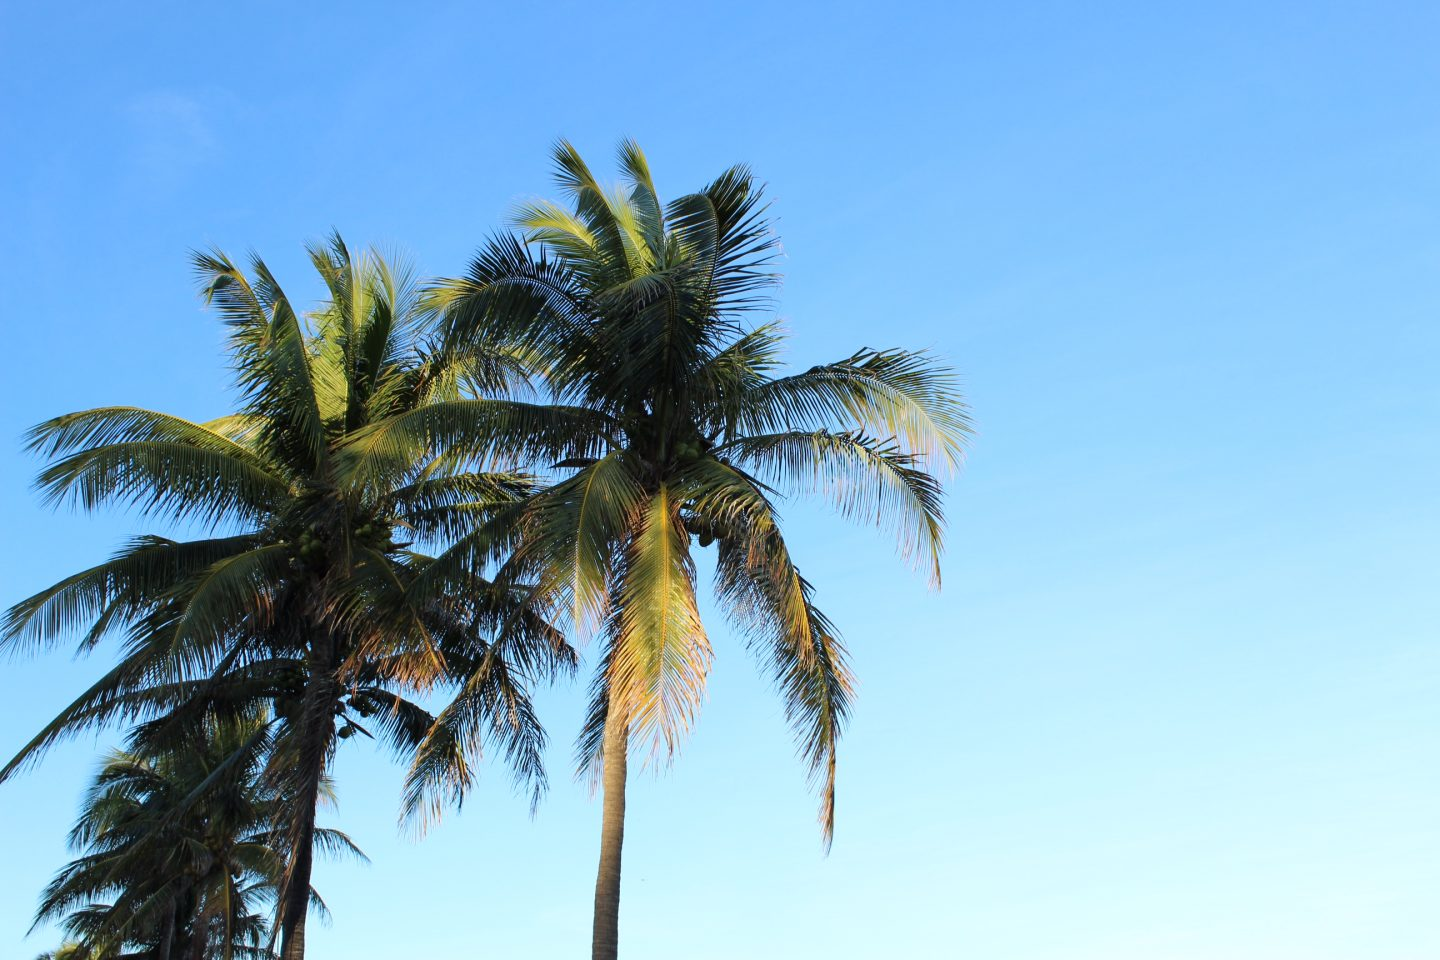 Miami travel guide palm trees blue